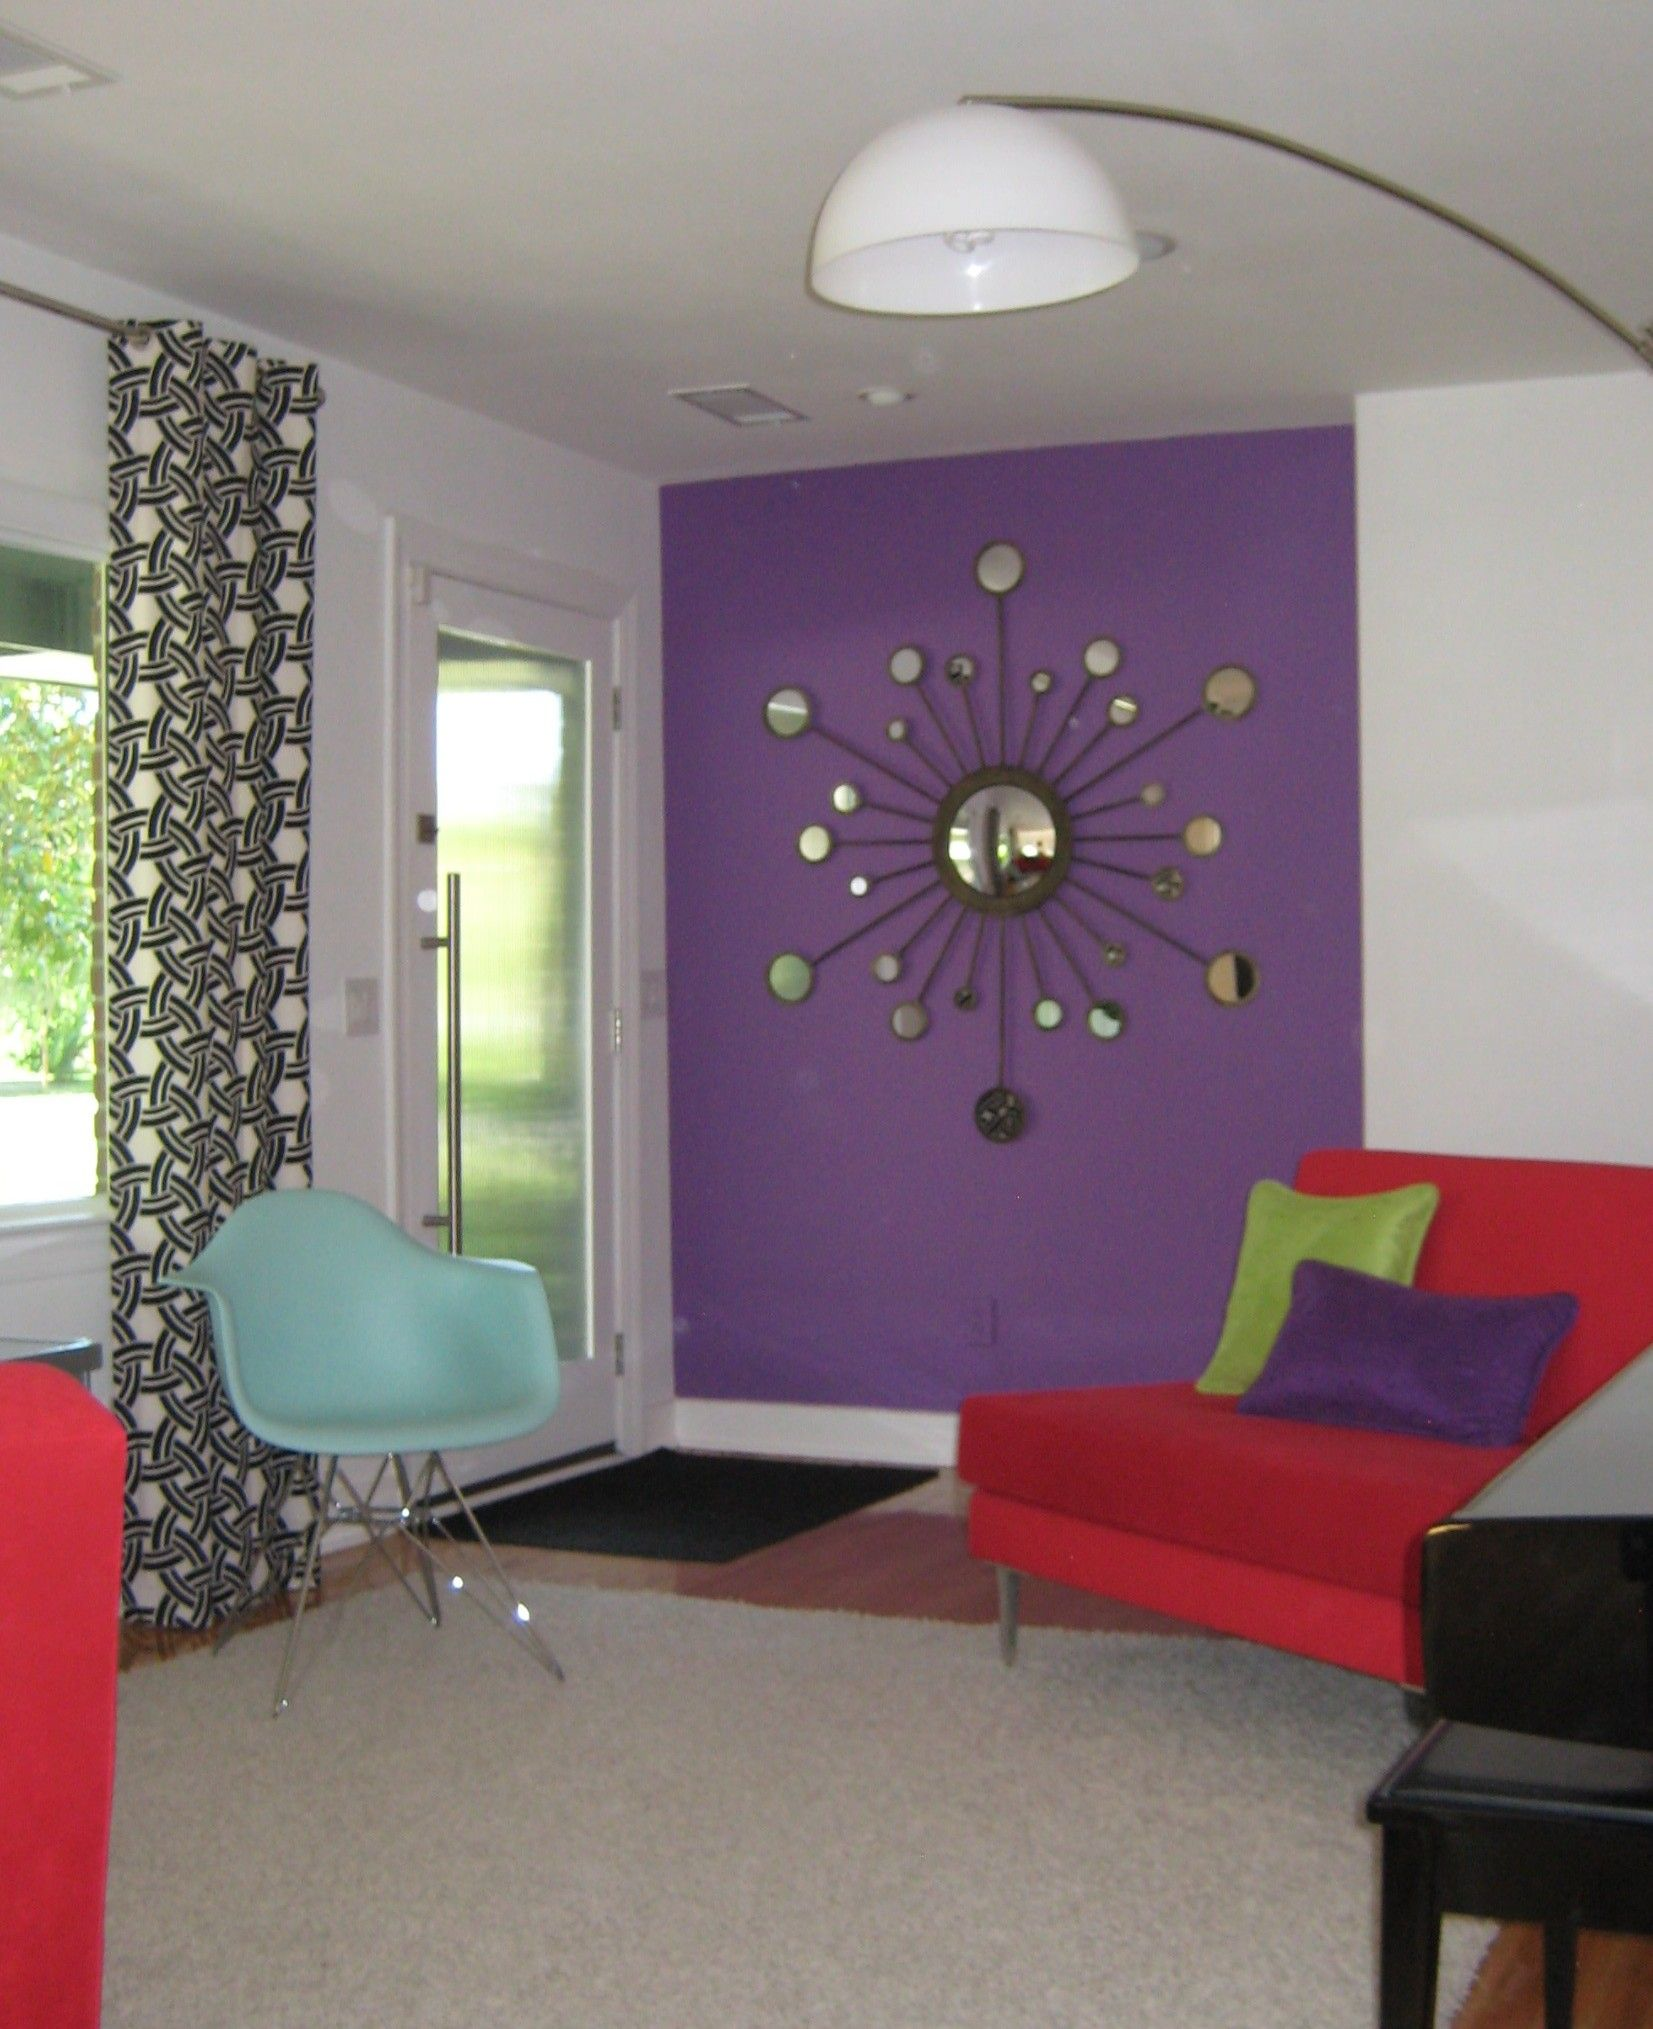 Retro design purple accent wall starburst mirror arc floor lamp red sofas black and white Purple accent wall in living room